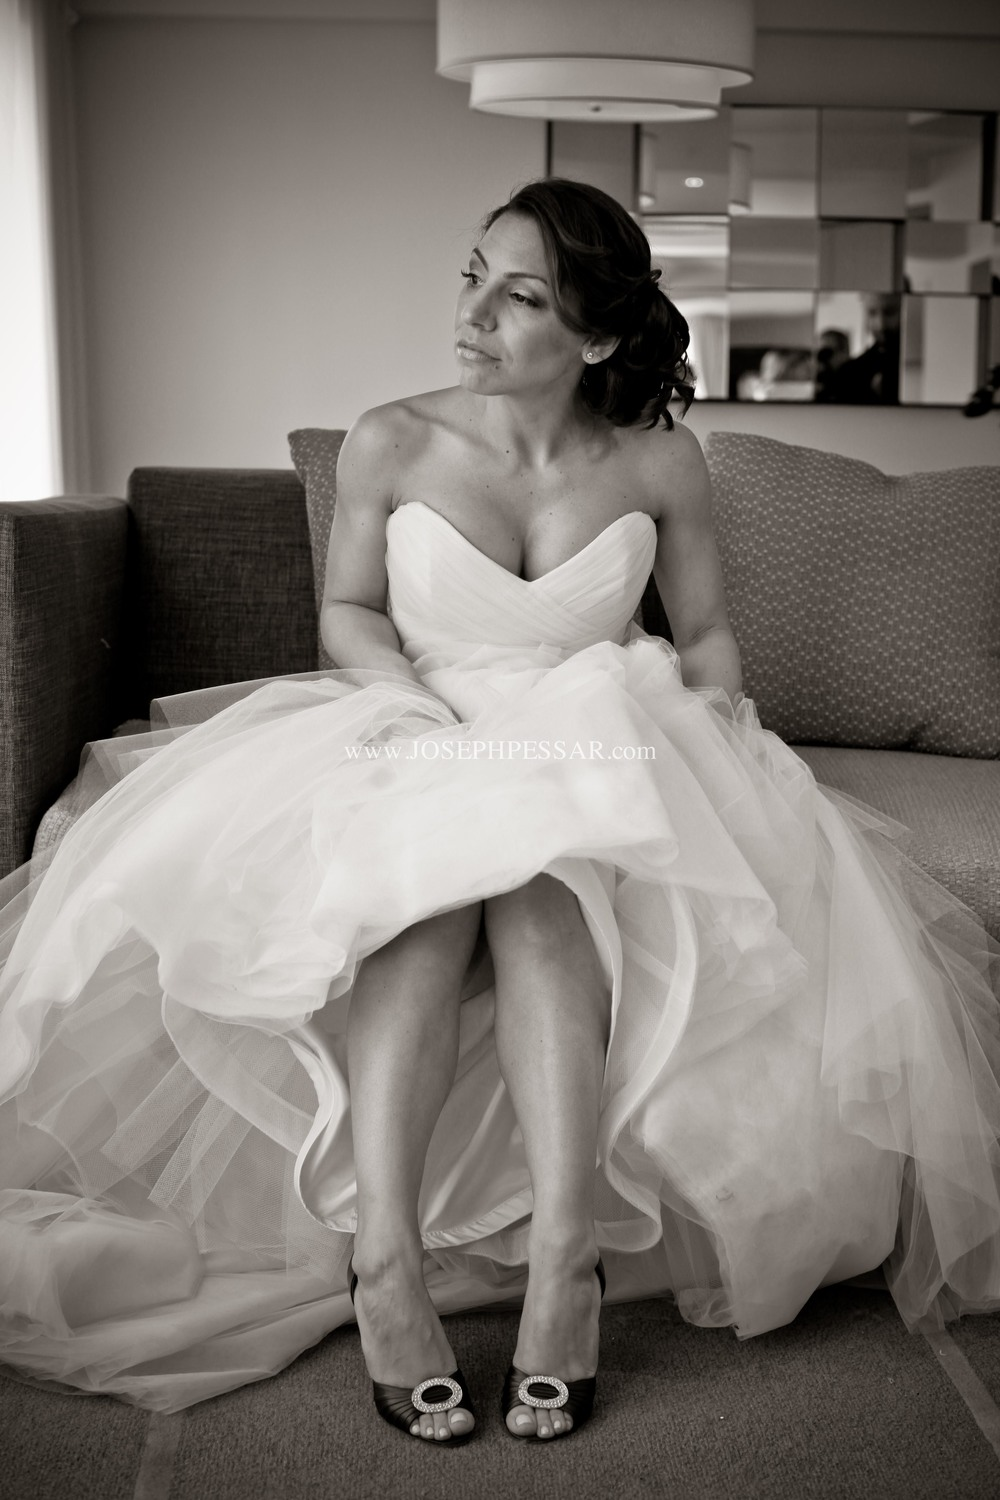 nyc_wedding_photographer0009.jpg